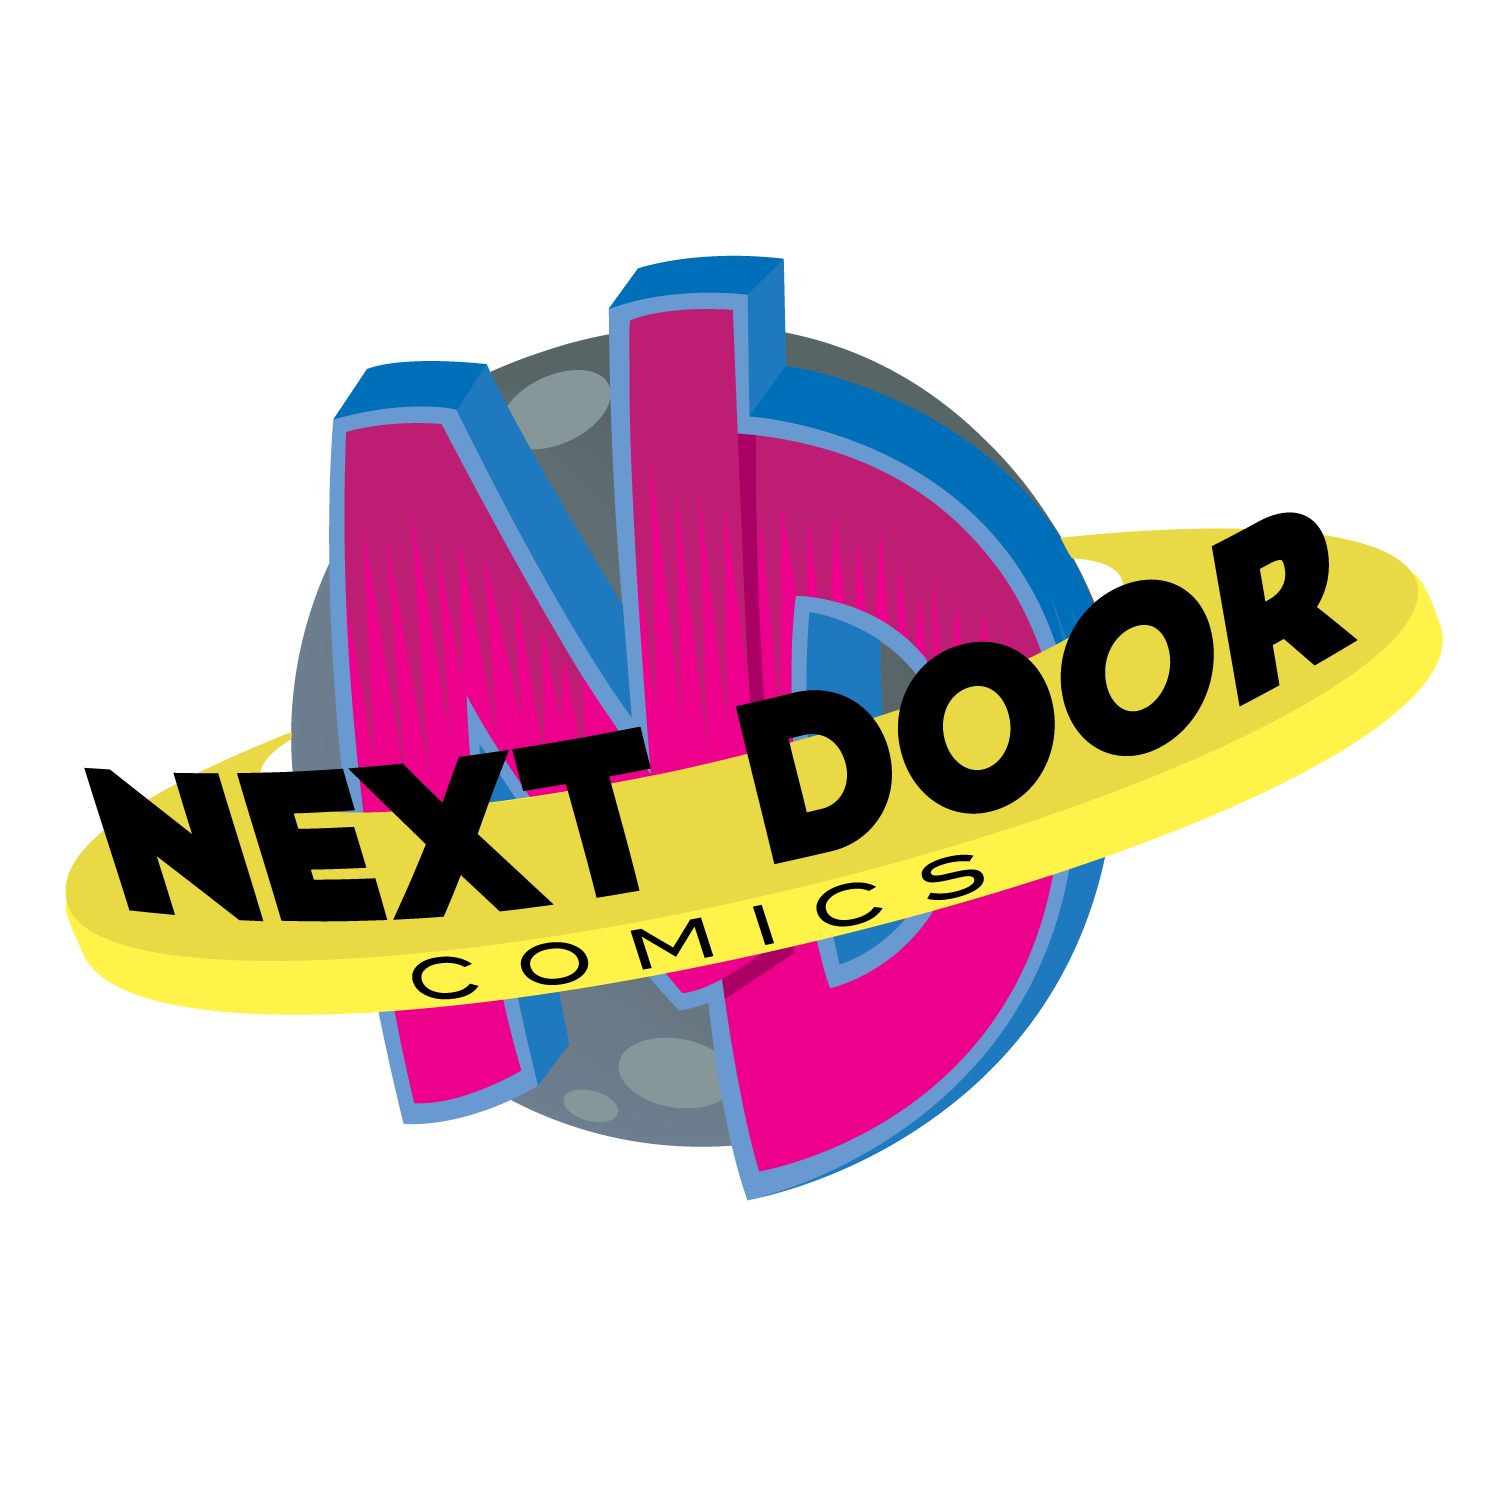 Next door comics logo